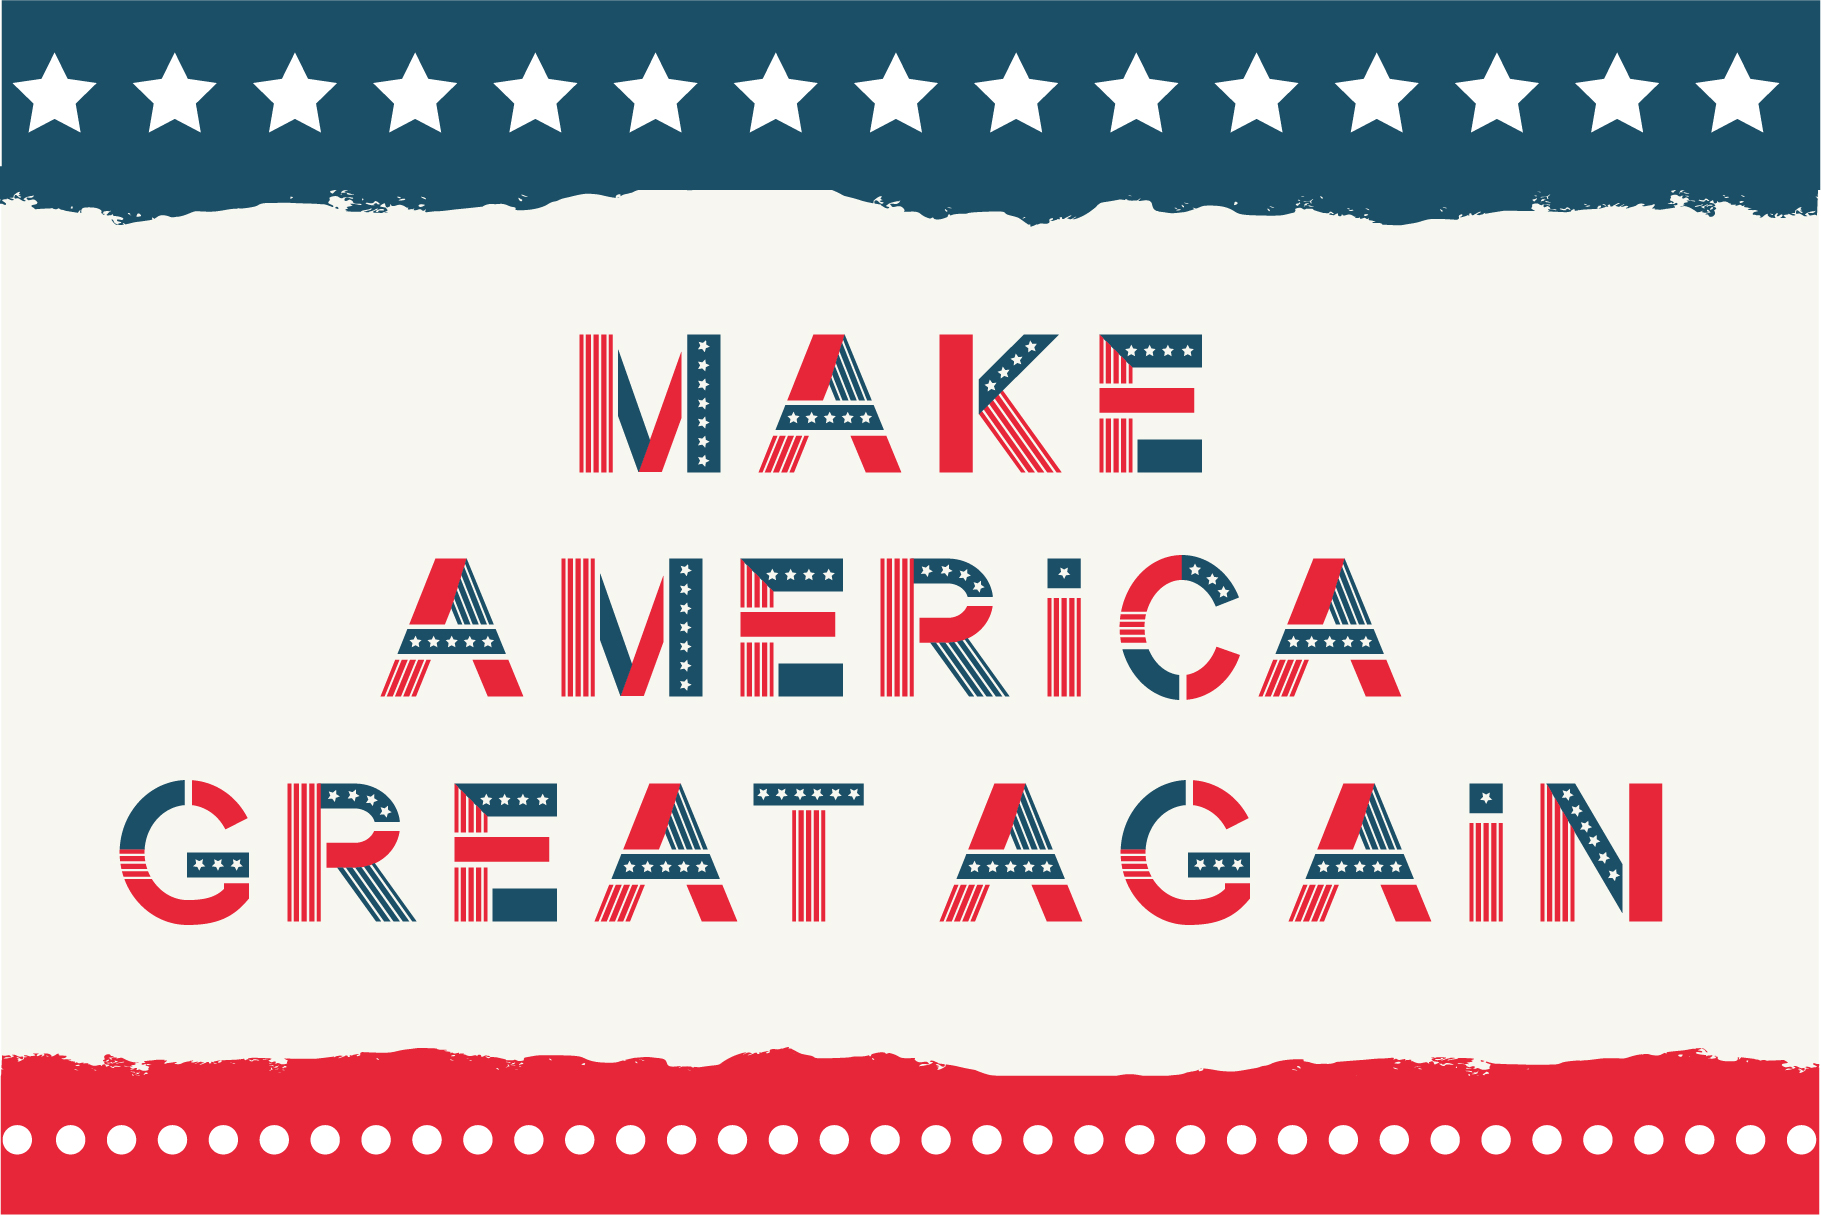 America otf color font example image 5